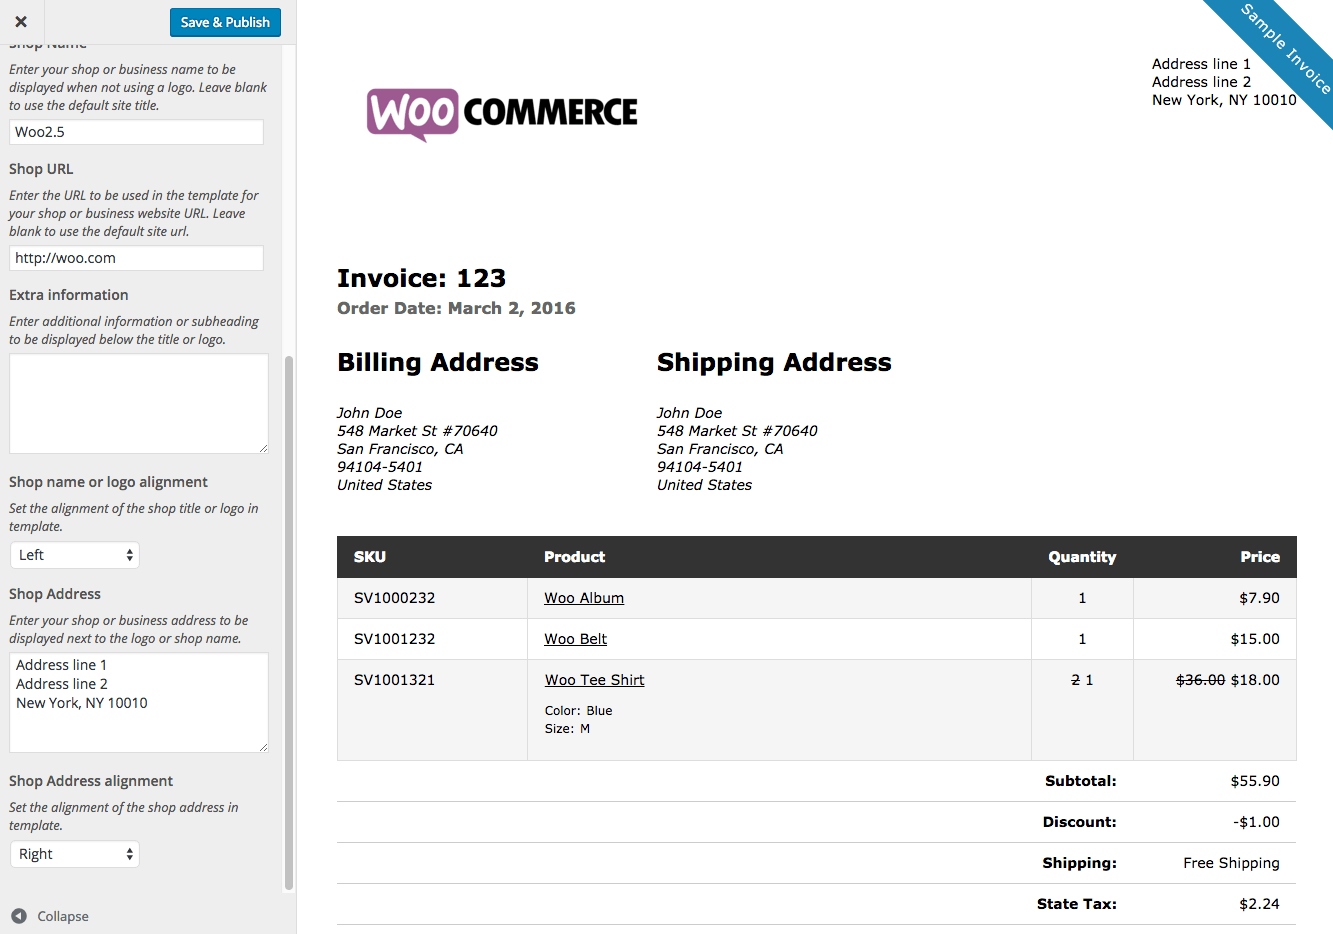 Shopdesignsus  Winning Print Invoices Amp Packing Lists  Woocommerce With Likable Woocommerce Print Invoices  Packing Lists Customizer With Divine Receipt For Rent Payment Template Also Acknowledgment Receipt In Addition Usps Tracking Number Location On Receipt And Fuel Receipt Generator As Well As Fried Rice Receipt Additionally Quicken Scan Receipts From Woocommercecom With Shopdesignsus  Likable Print Invoices Amp Packing Lists  Woocommerce With Divine Woocommerce Print Invoices  Packing Lists Customizer And Winning Receipt For Rent Payment Template Also Acknowledgment Receipt In Addition Usps Tracking Number Location On Receipt From Woocommercecom